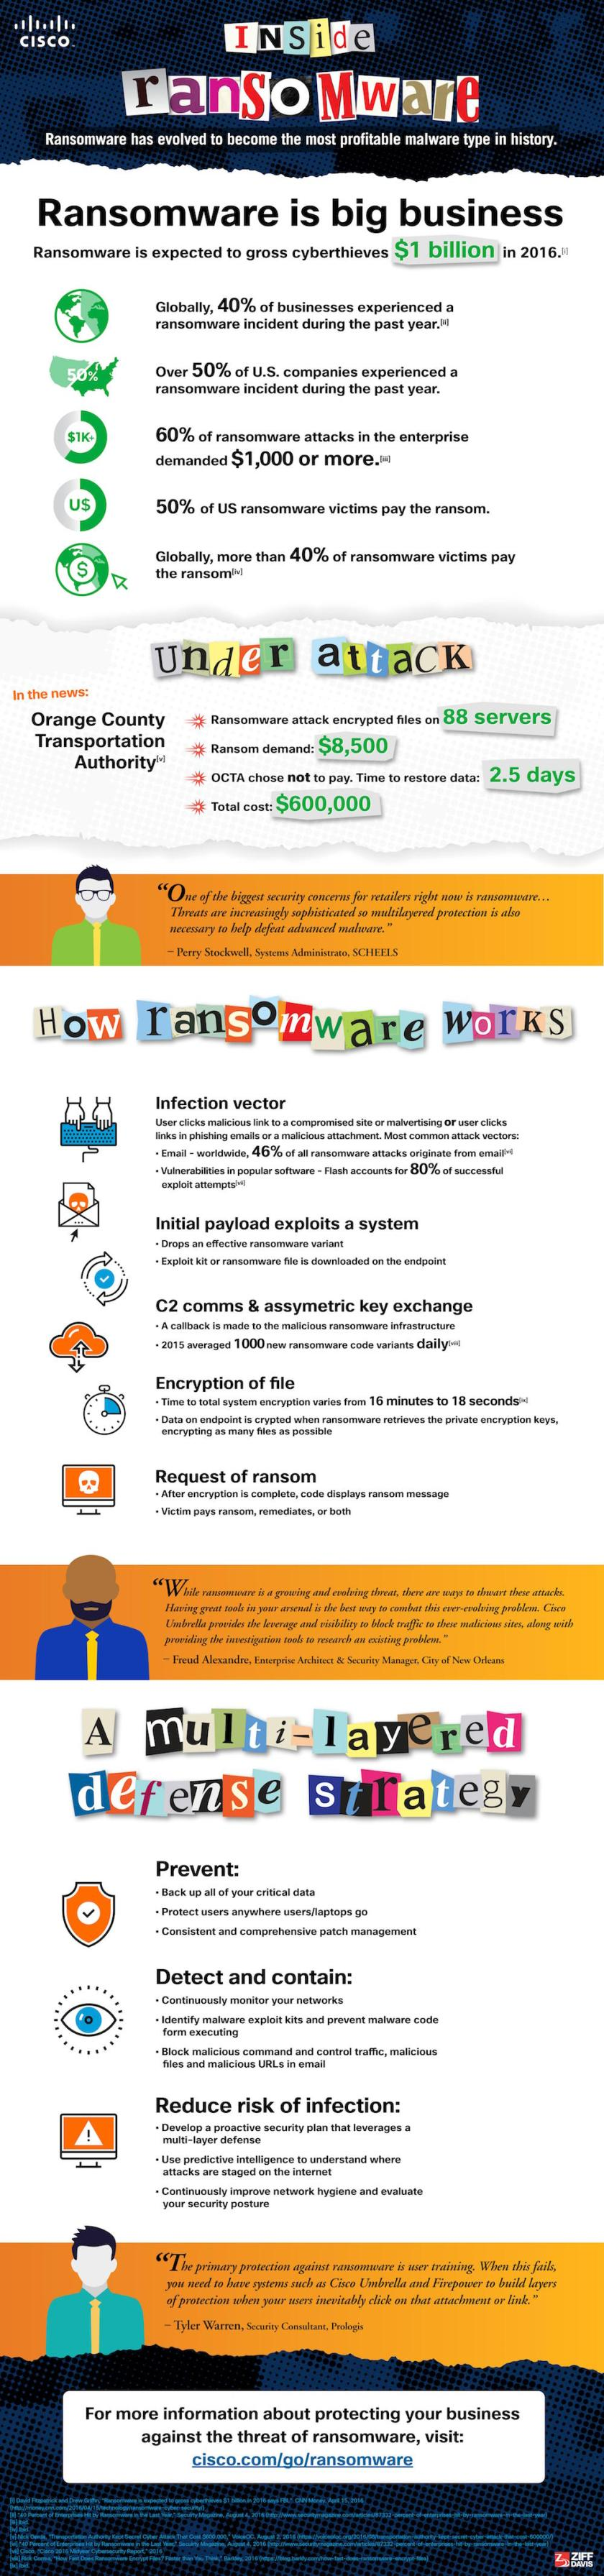 infographic-ransomware